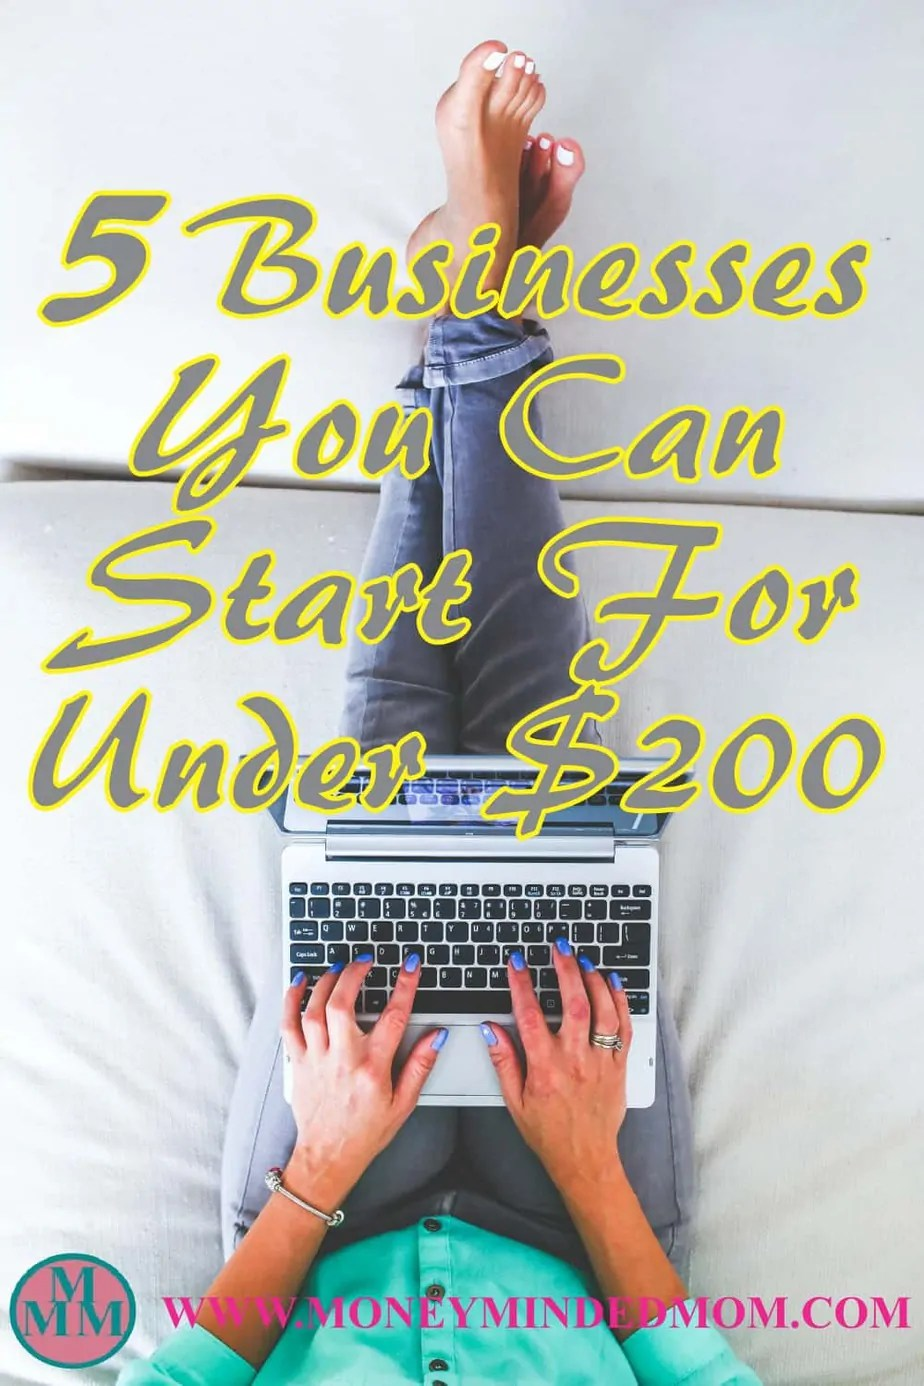 5 Businesses You Can Start For Under $200